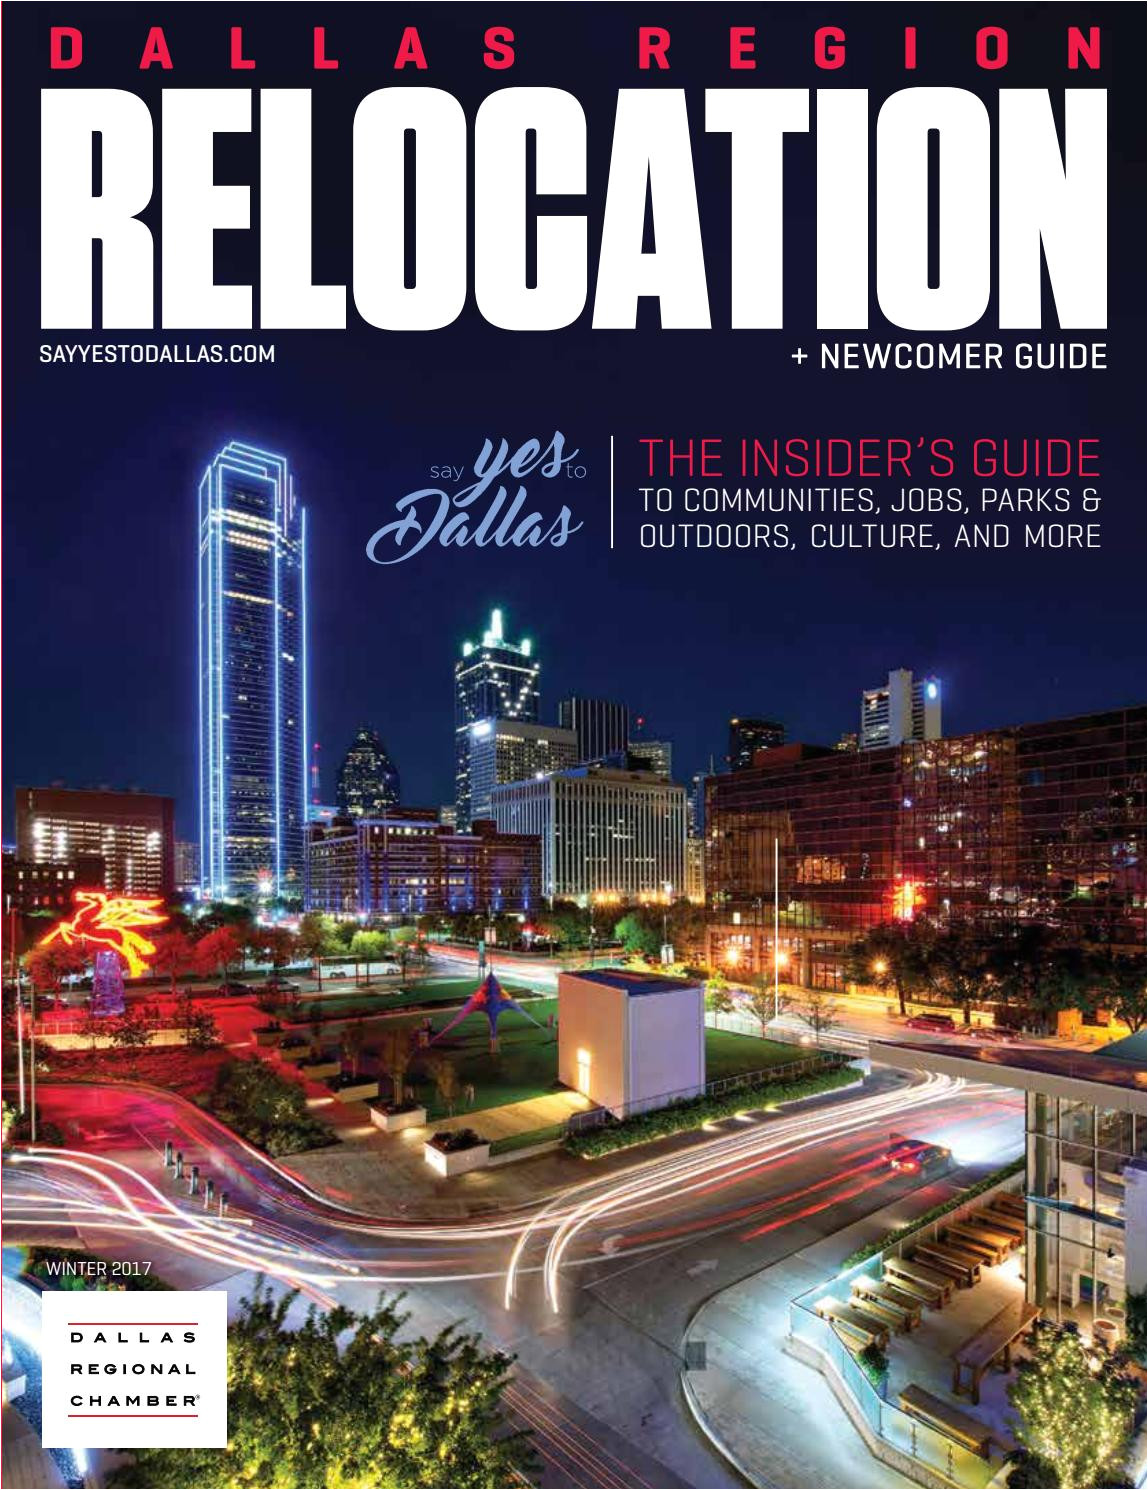 dallas region relocation newcomer guide winter 2017 by dallas regional chamber publications issuu